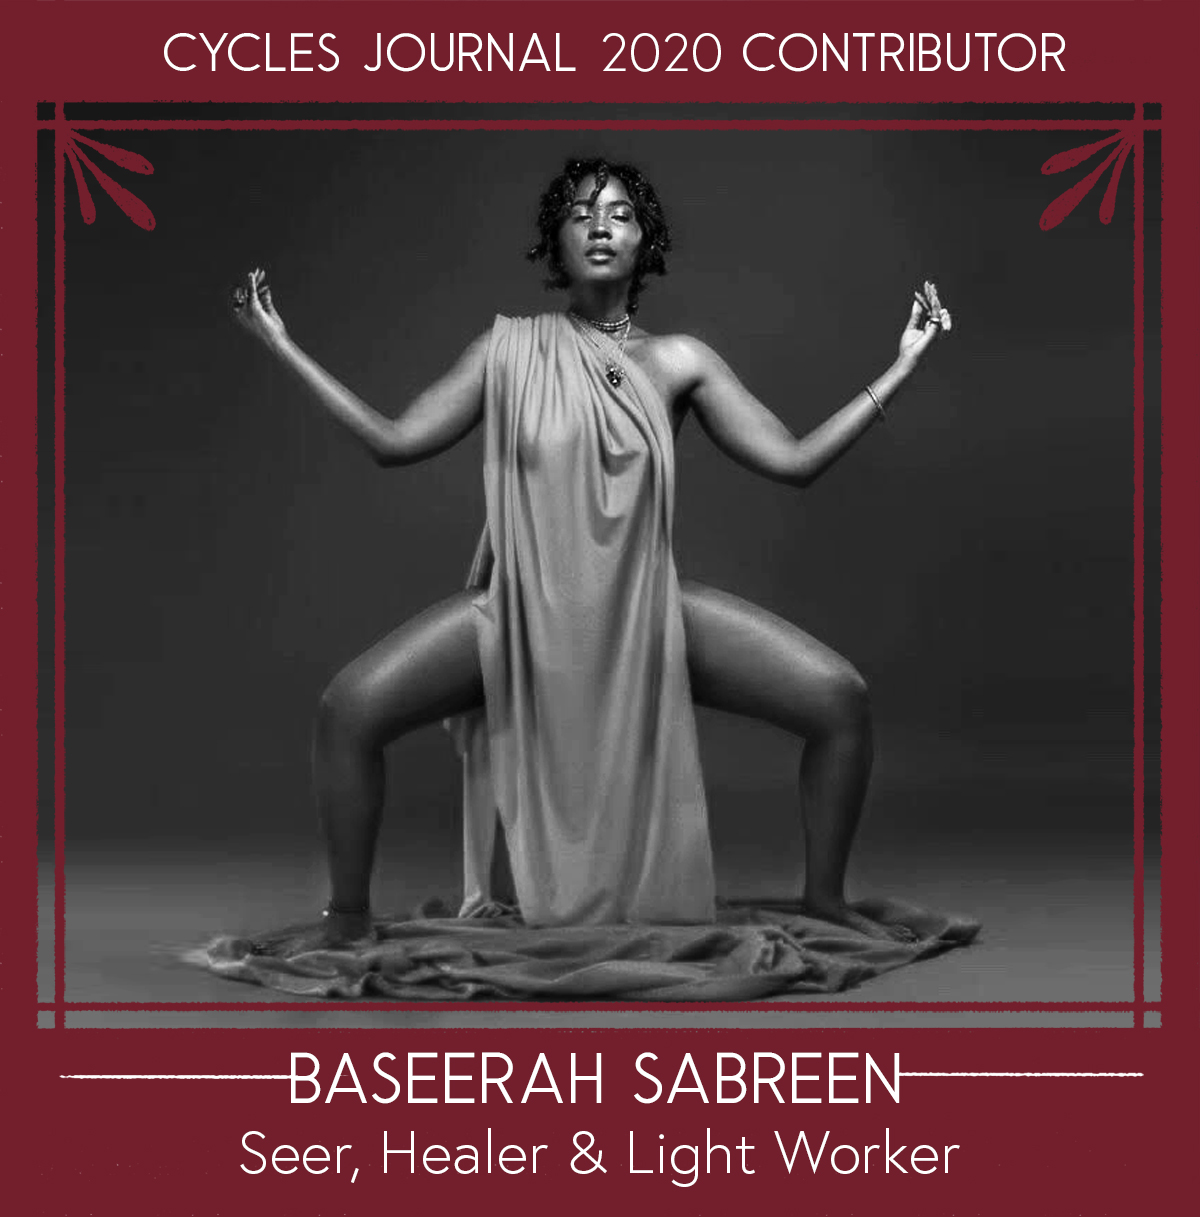 Baseerah Sabreen - Seer, Healer & Light WorkerBaseerah Sabreen is a Revolutionary Intuitive Seer, Conducting her Light Work in the Heart of Philadelphia, Walking in Spirit with Those who Seek to Introduce Alternative, Natural Healin' Methodologies into their Journey. Baseerah is the Manifesting Force Behind Light Beings Healin' Company, an Intuitively-Centric Spiritual Tools and Services Startup. LBHC was Created to Align the Mind, Body, and Spirit to its True Purpose Through Crystal Cleansing, Sound healing, Smudging, Chakra Readings, Using our Self-Published Taa Marbuta Chakra Deck, and Meditative Consultations. Through Vending Spirit Tools and Providing Intuitive Services at Local Healing and Metaphysical events, Baseerah has Created a One-of-a-Kind Pop-Up Alternative Healing Clinic, Which Serves a Variety of Philadelphia Communities. Along With Being an Alchemist, Seer, and Light Worker, Baseerah is an Ordained Spiritual Minister with her Bachelors degree in Metaphysics from the University of Sedona.Social: @lbhealincoWebsite: Lightbeingshealinco.comEmail: lbhealingcomp (@) gmail.com